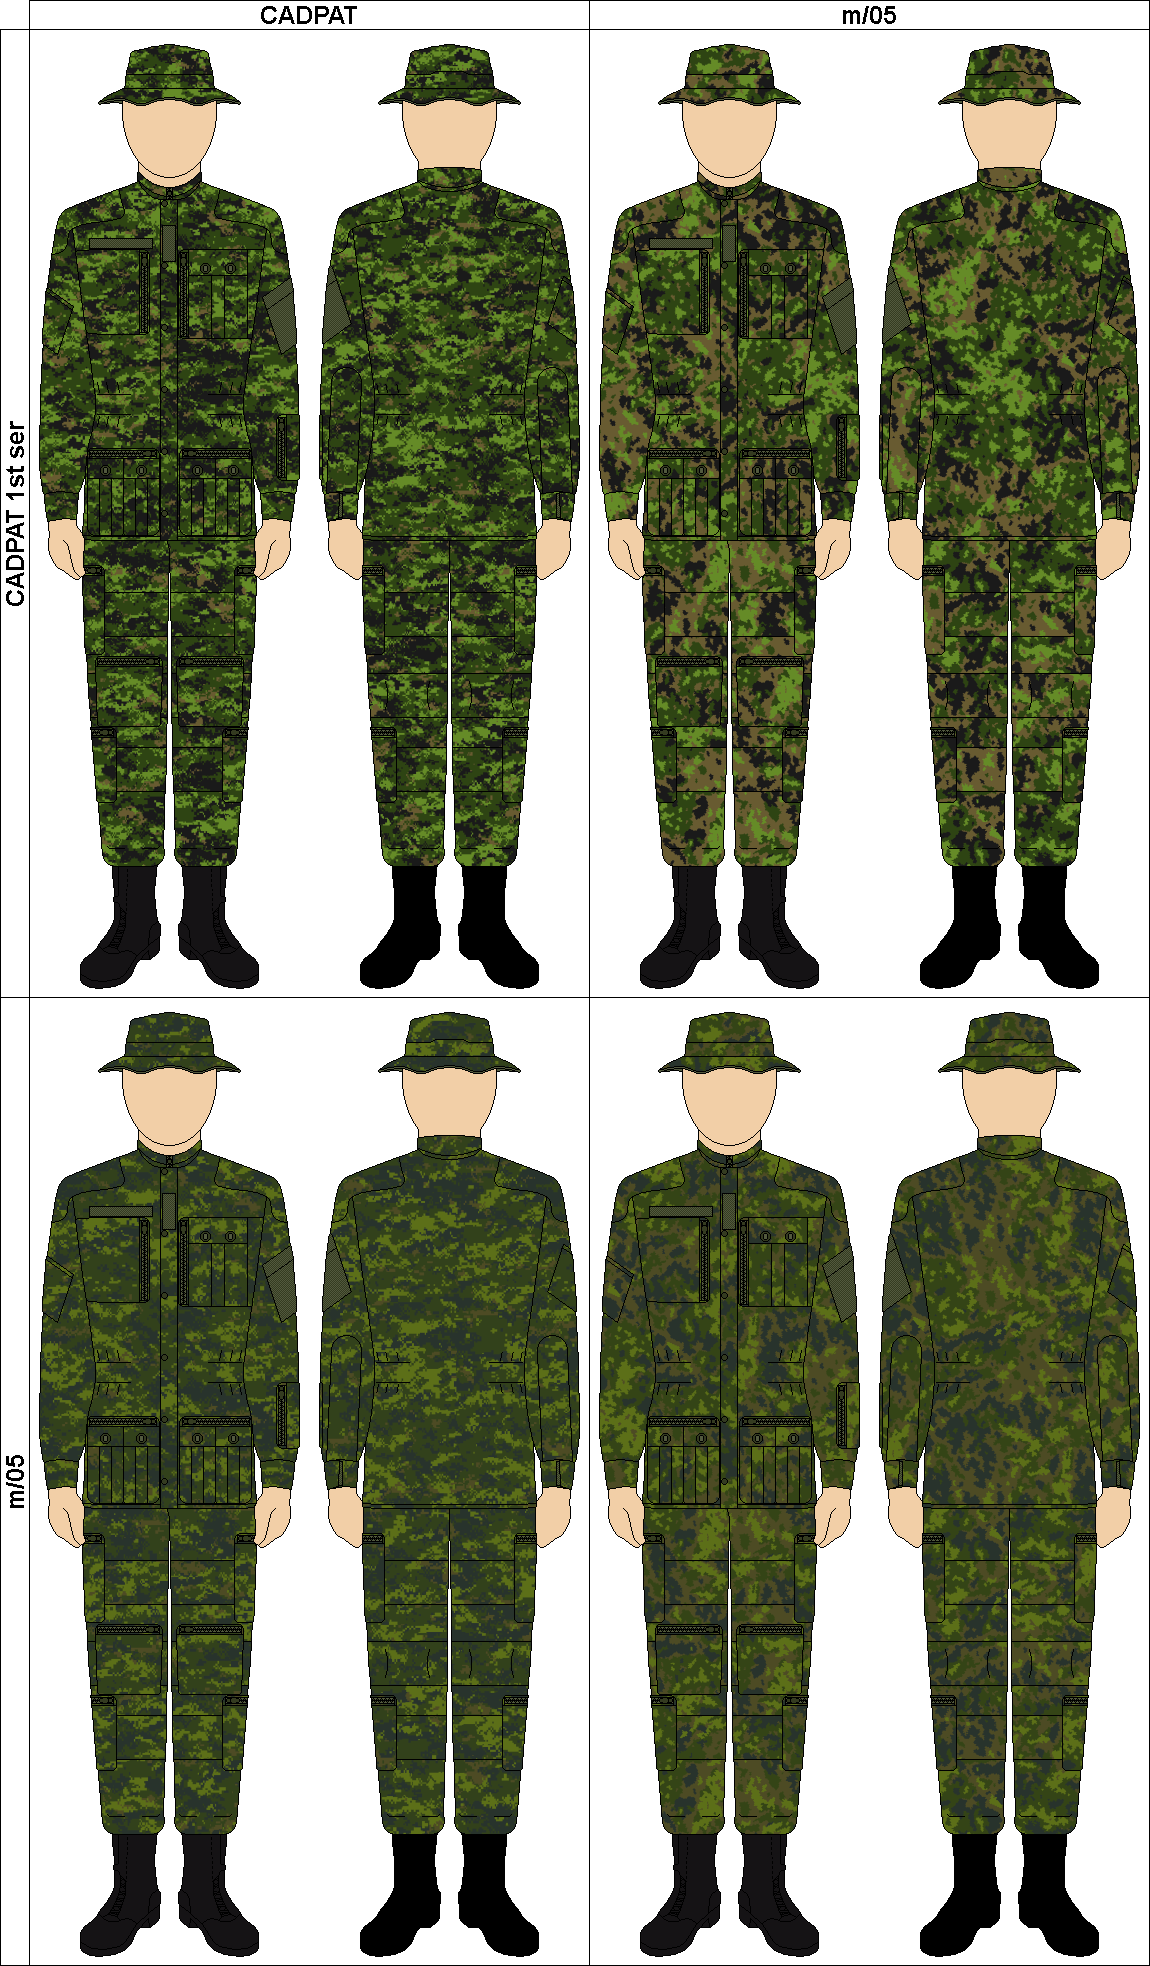 cadpat camo submited images - photo #12